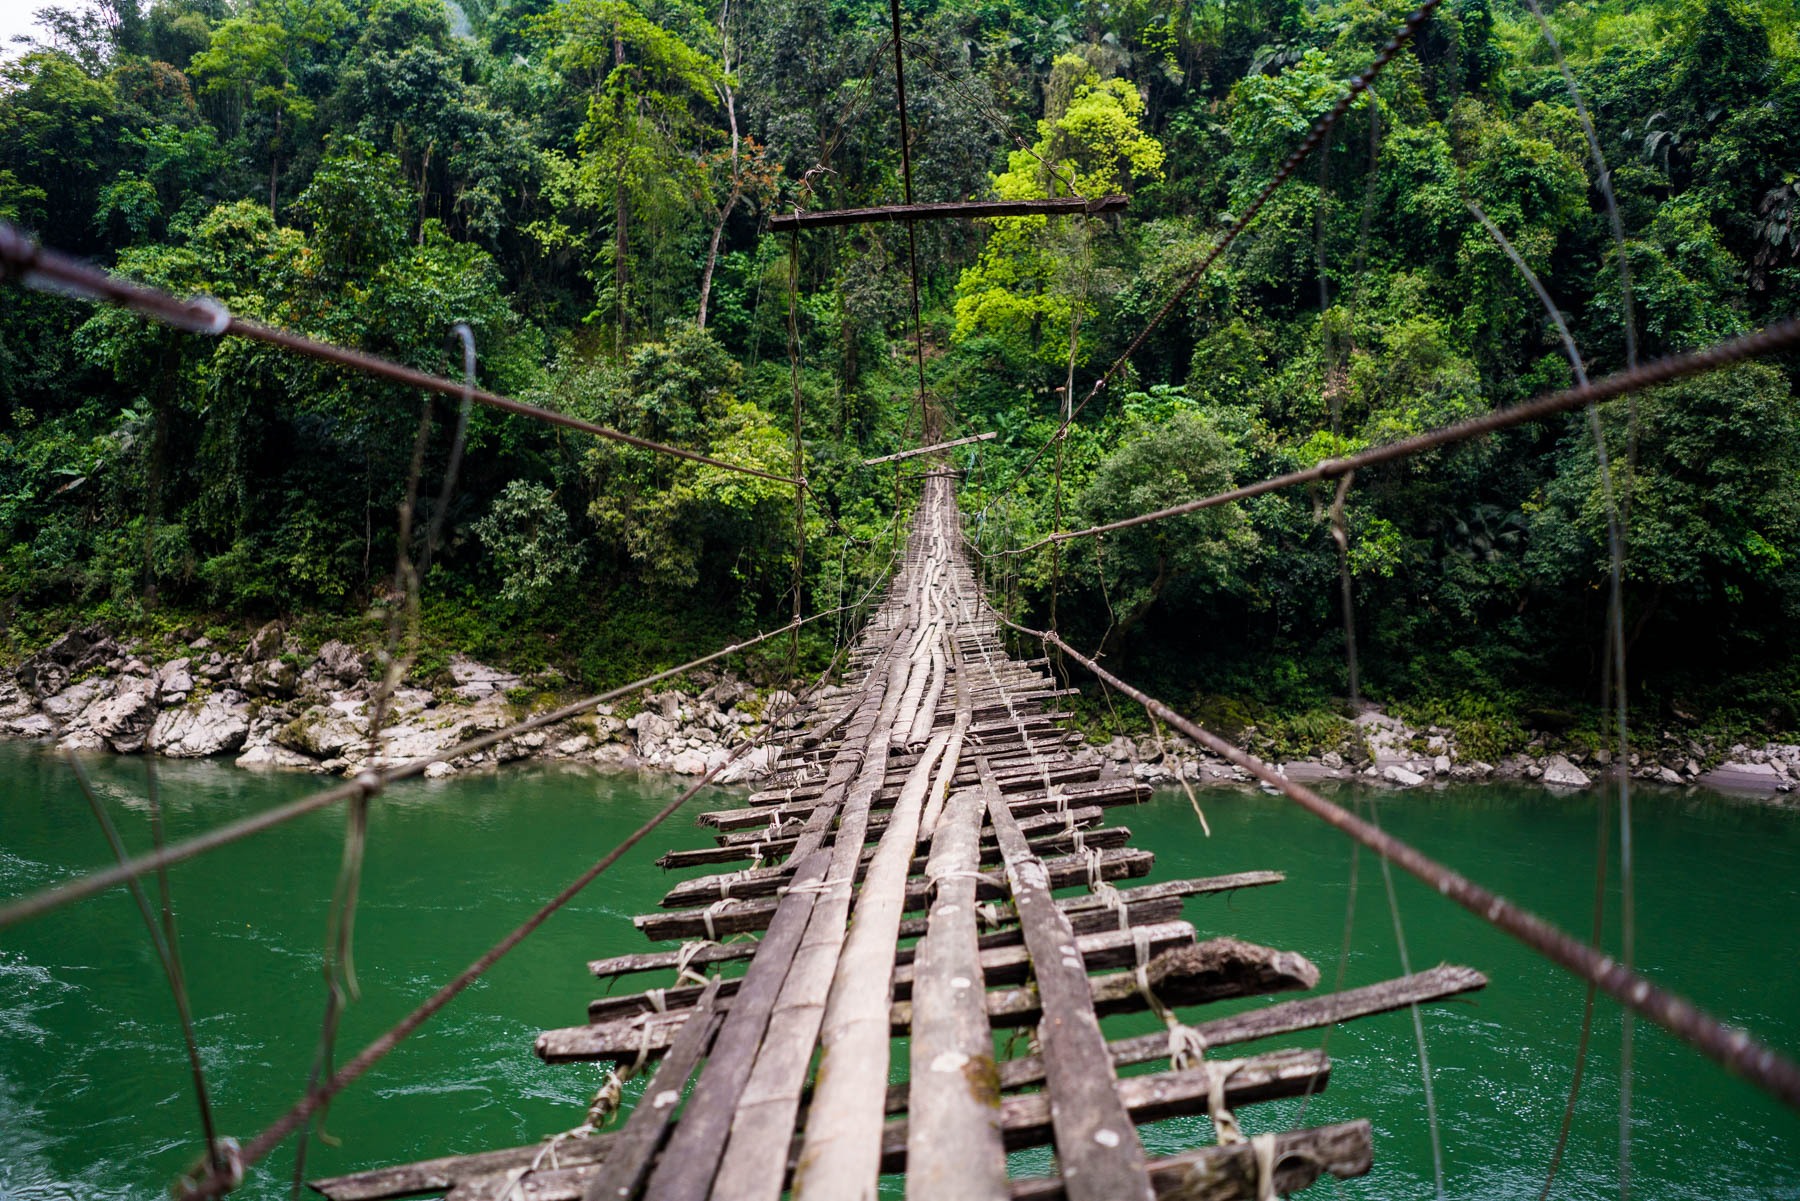 Backpacking Arunachal Pradesh travel guide - Hanging bridge near Daporijo - Lost With Purpose